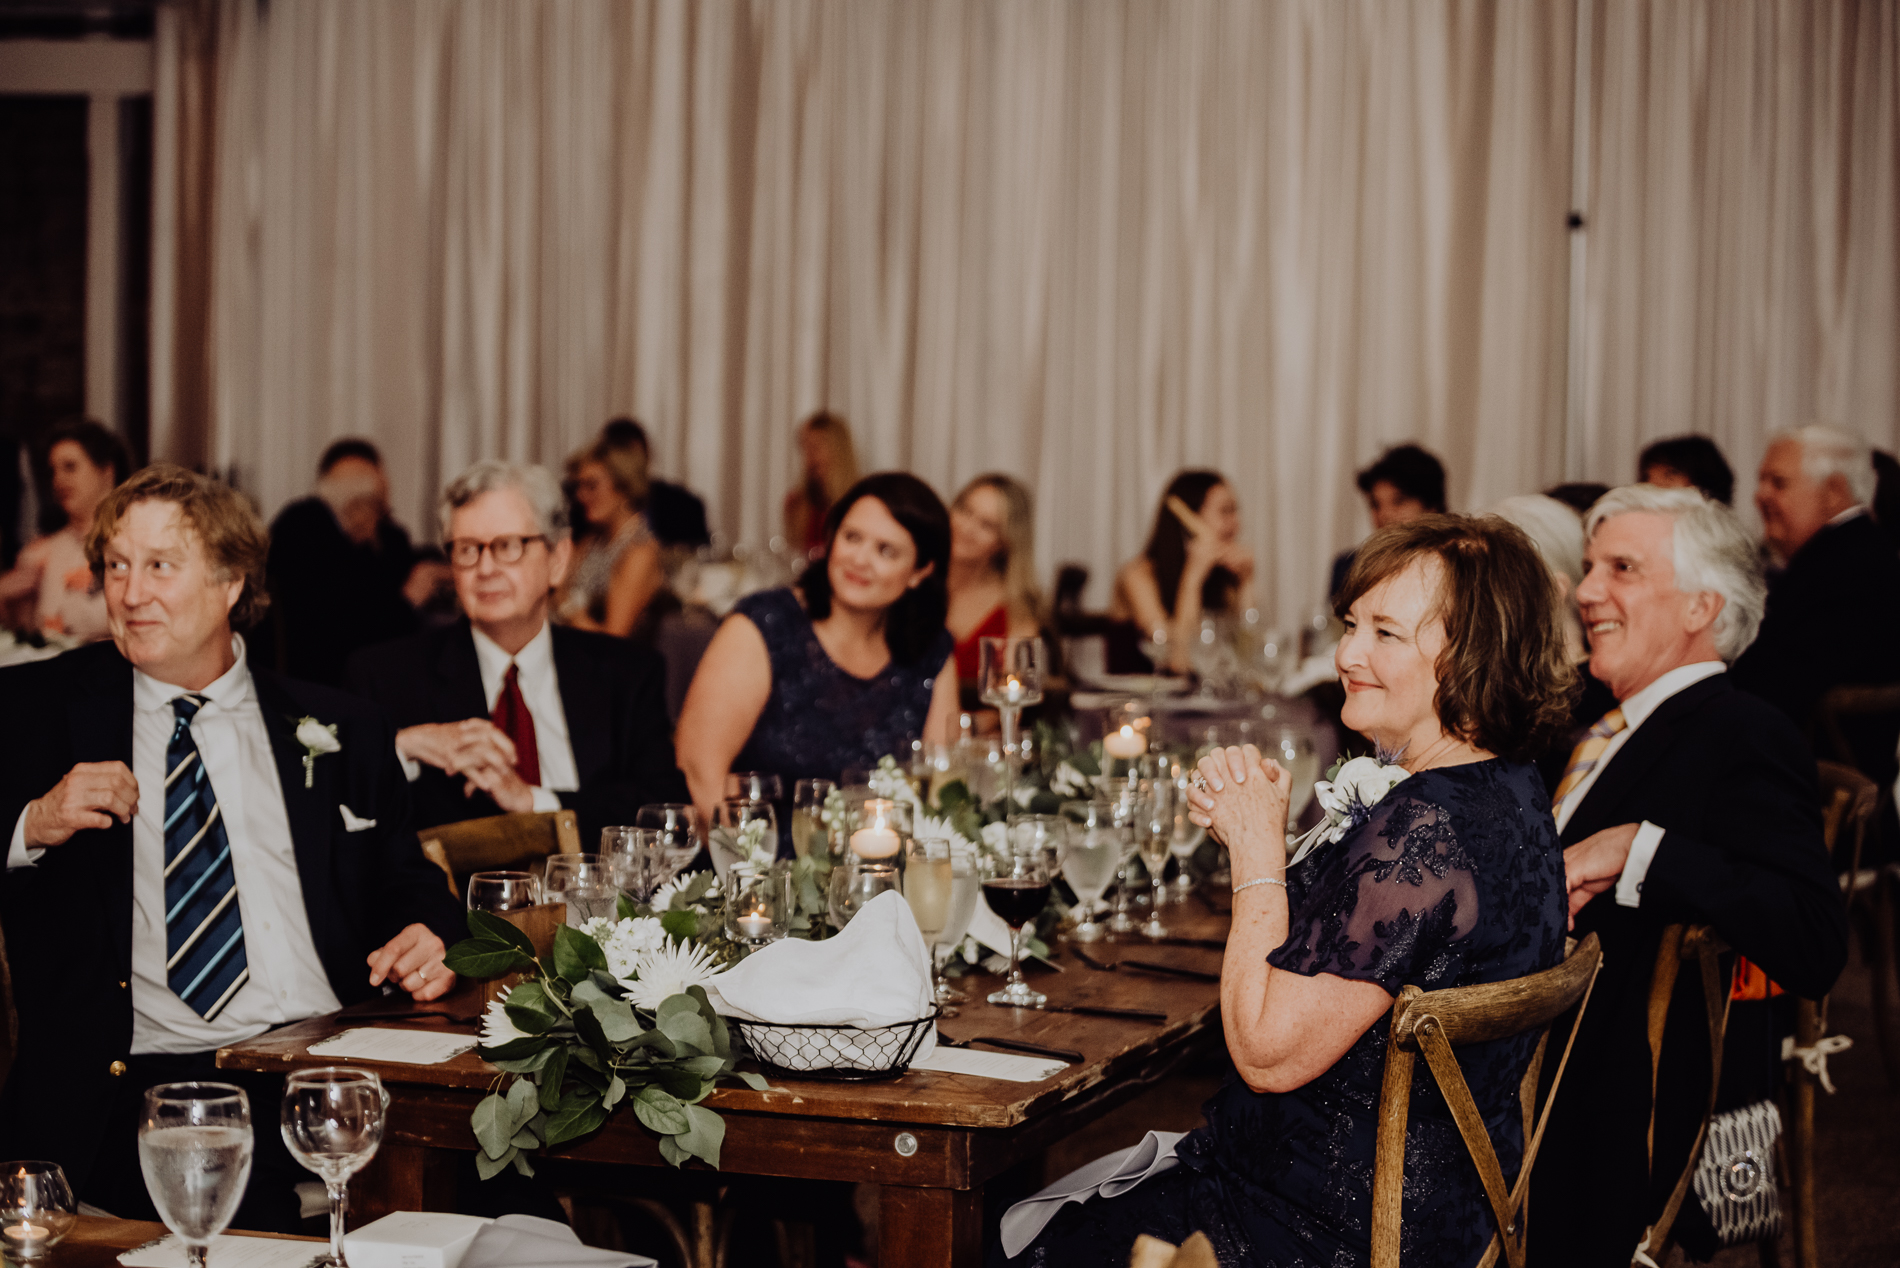 gabi and campbell east nashville wedding at riverwood mansion by wilde company-43.jpg